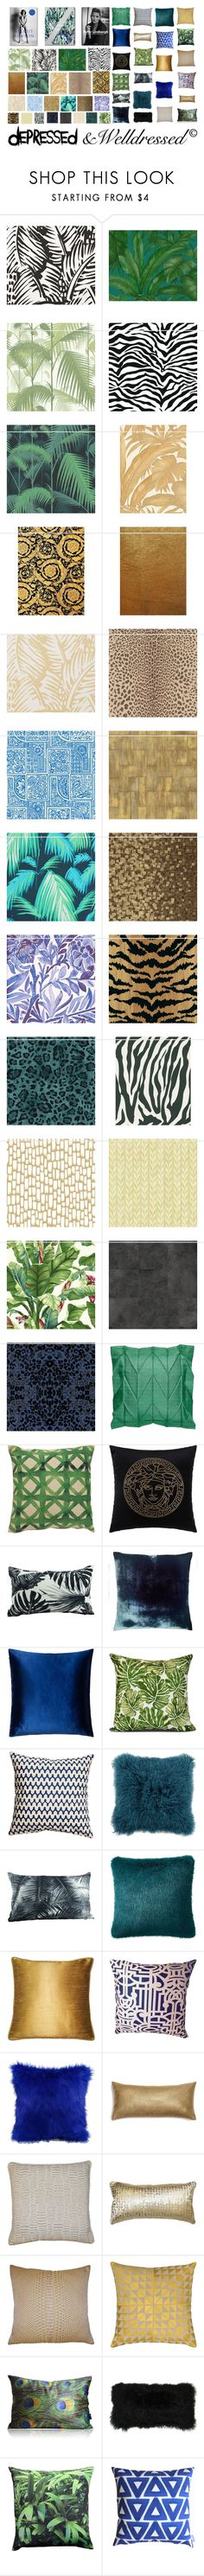 """BlueMonday: Blue & Green for your home"" by beingsilly ❤ liked on Polyvore featuring interior, interiors, interior design, home, home decor, interior decorating, Taschen, Versace, Cole & Son and York Wallcoverings"